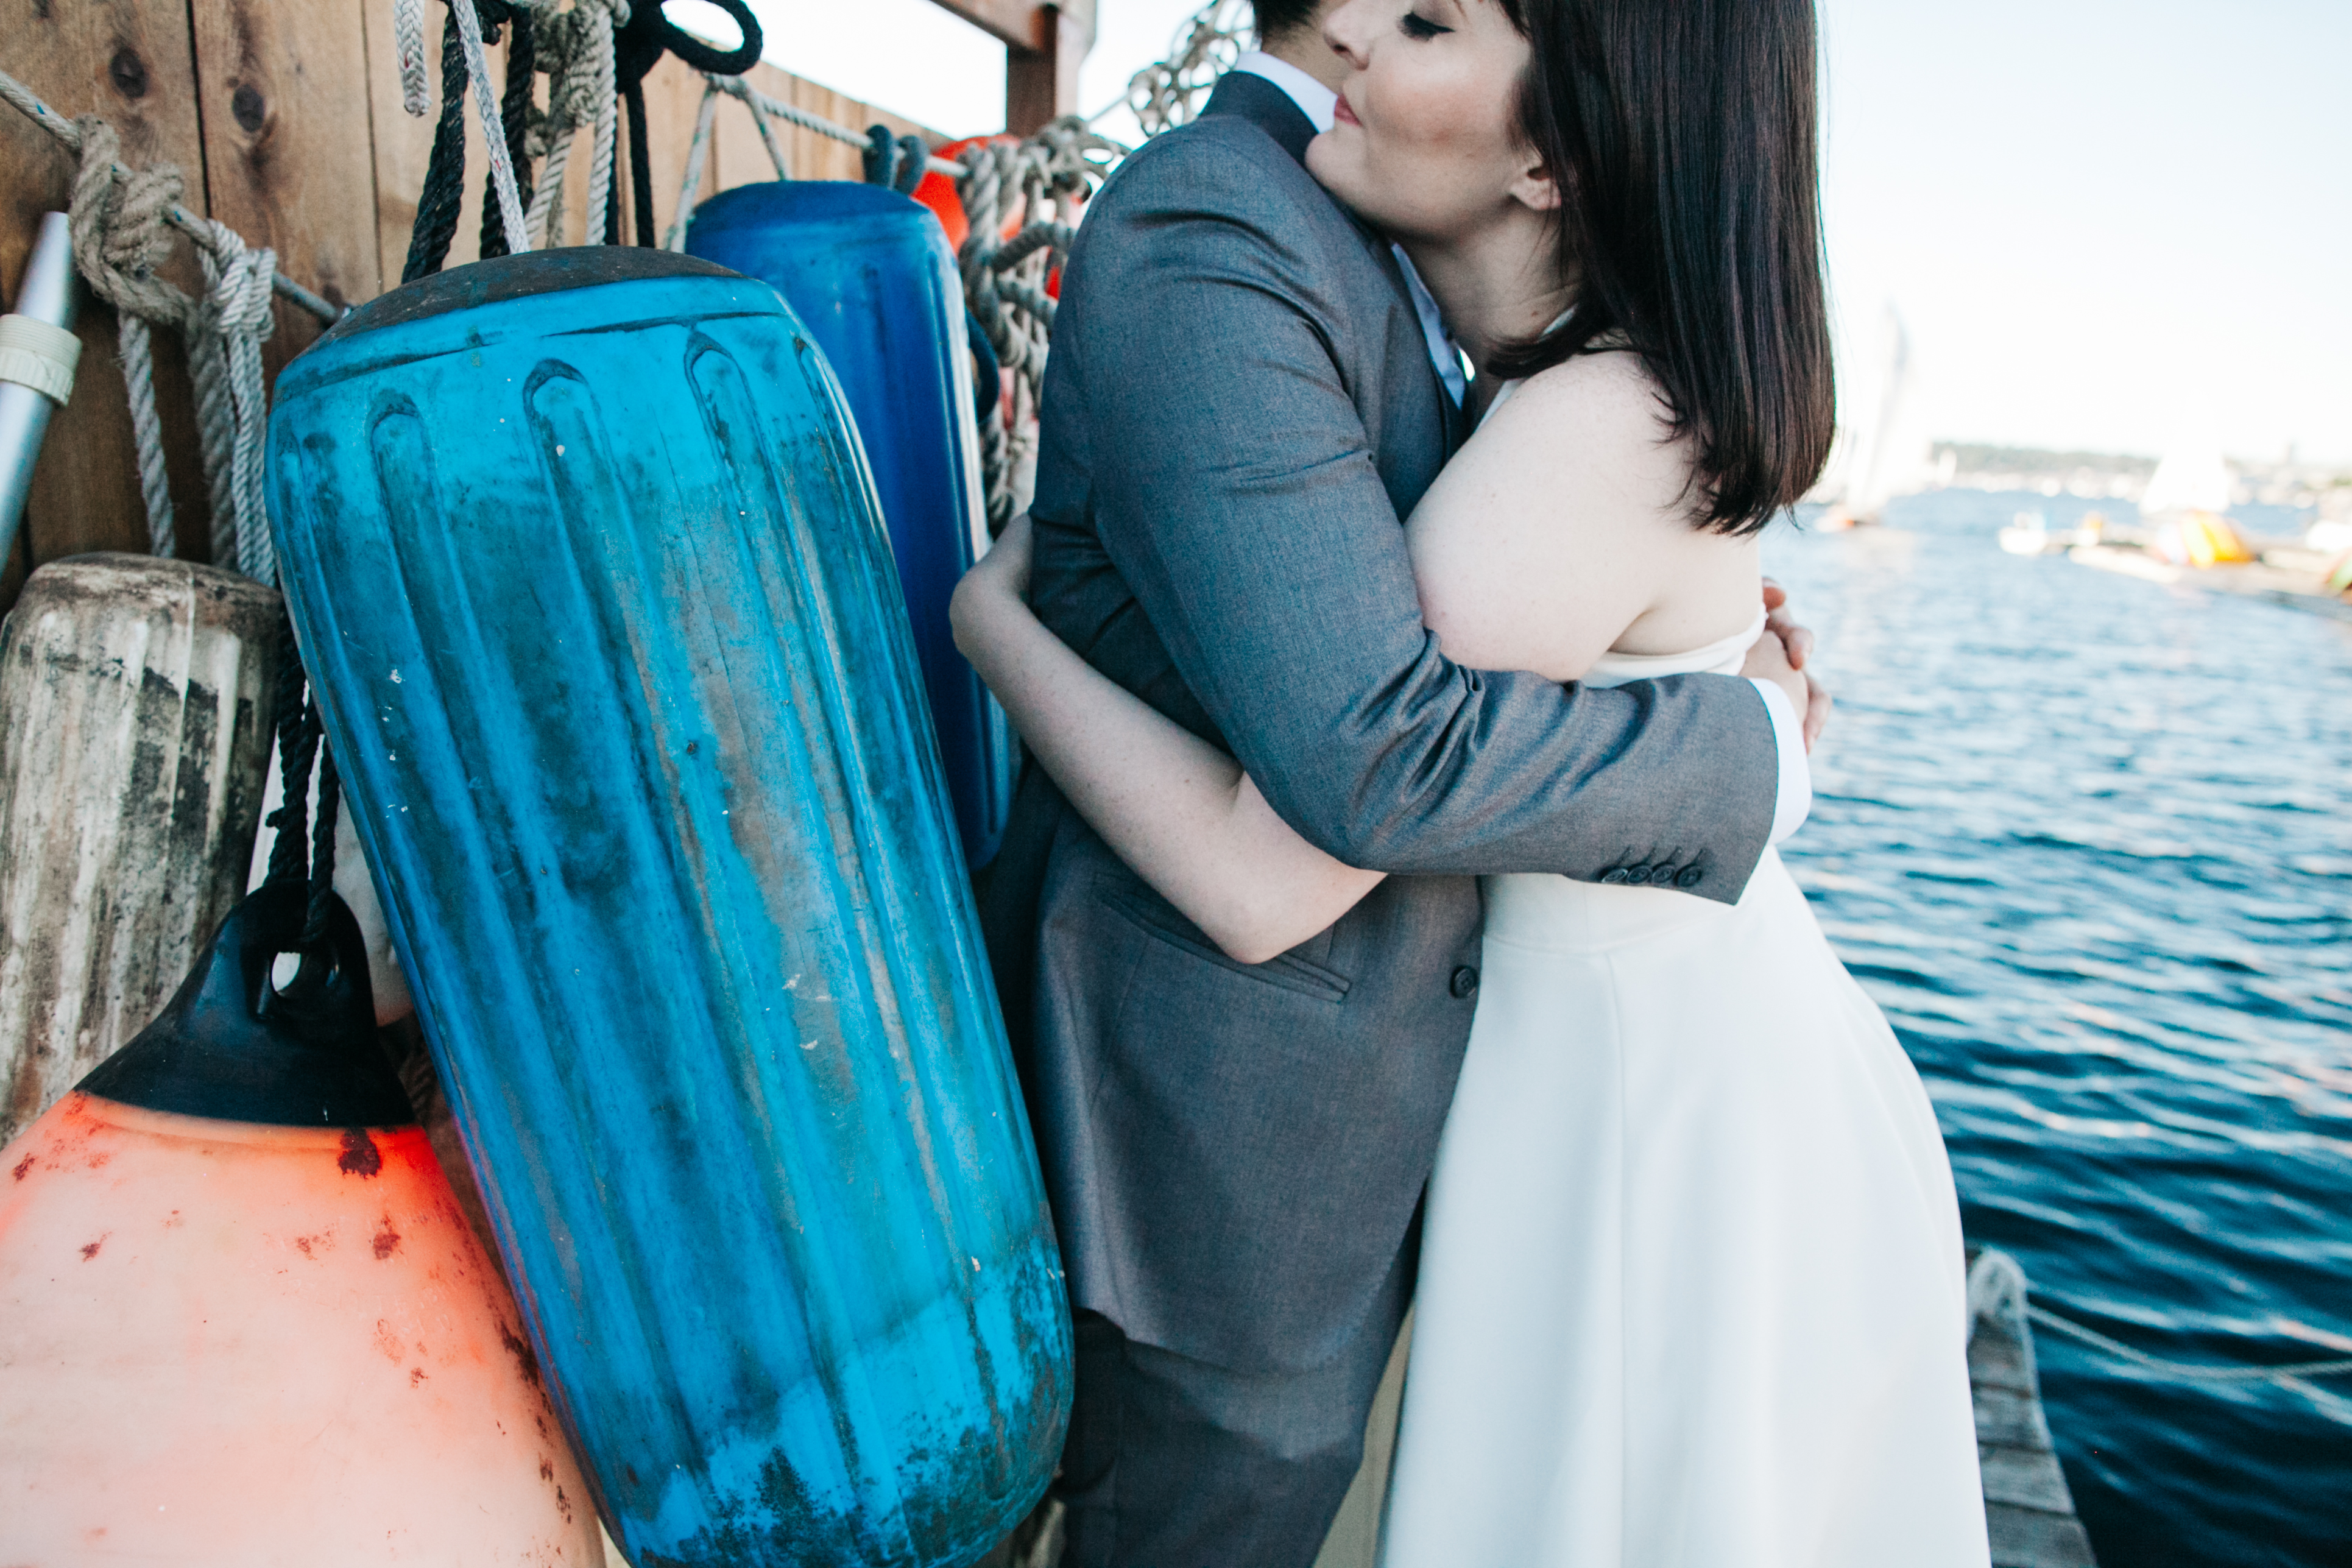 Center for Wooden Boats wedding in Seattle | Seattle boat marina wedding picture | Perfectly Posh Events, Seattle Wedding Planning | Kathryn Moran Photography